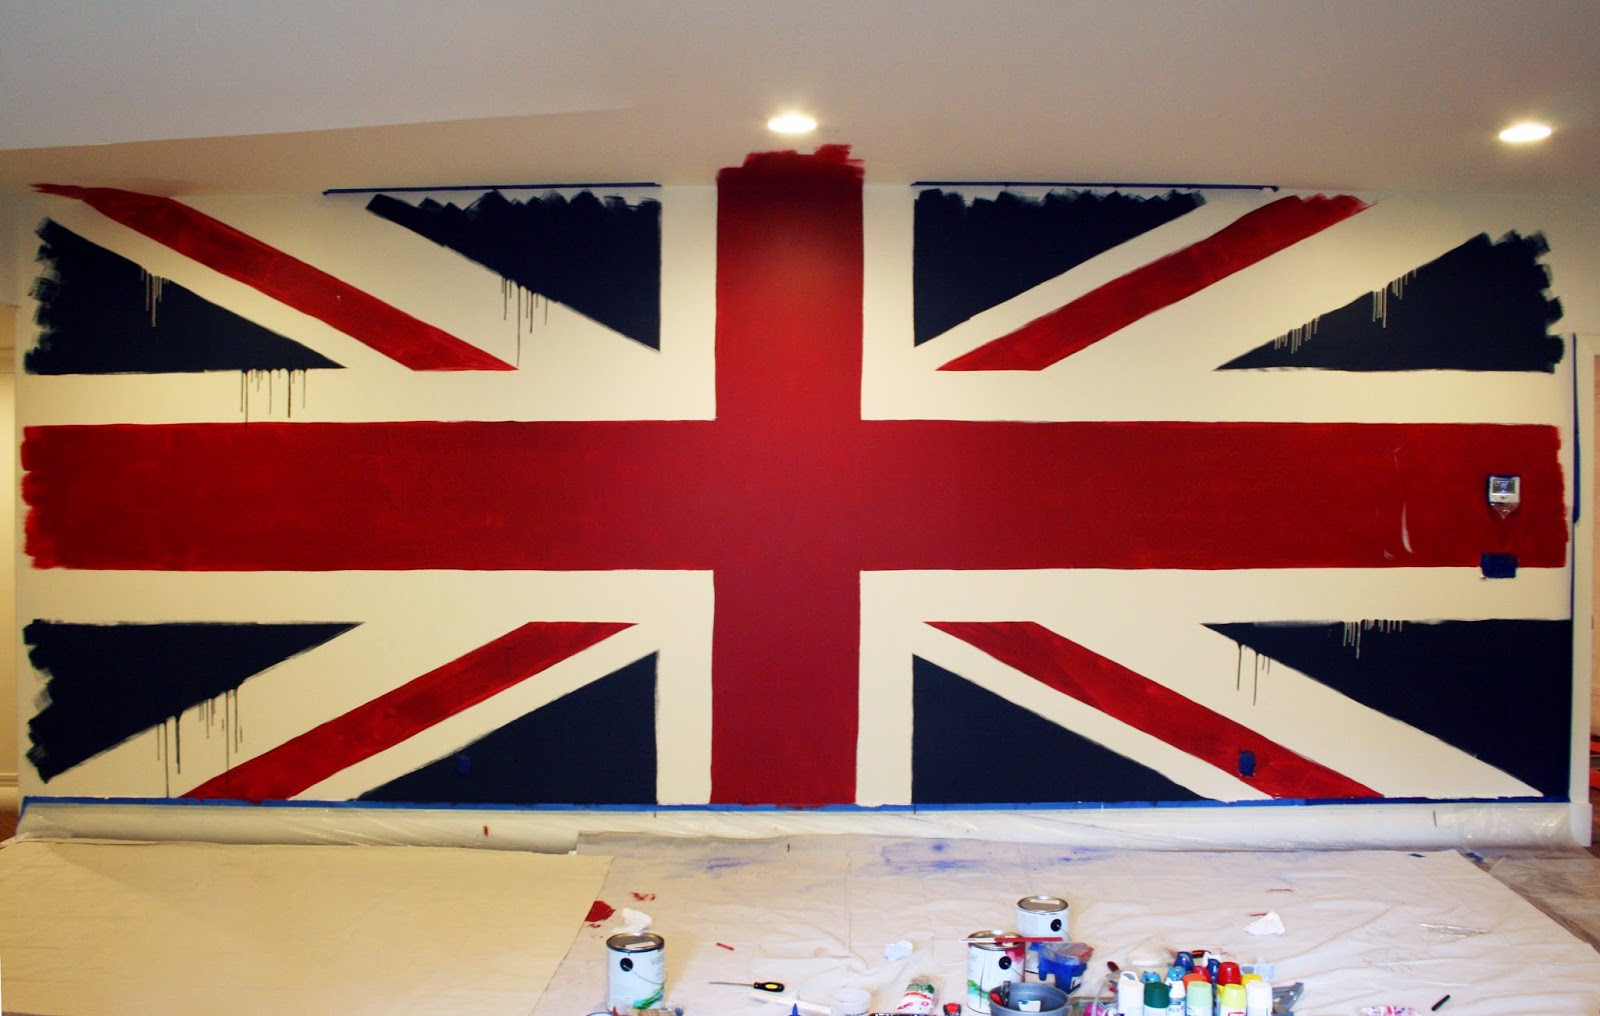 Marvelous The Beatles Union Jack Painted Wall Mural Part 5